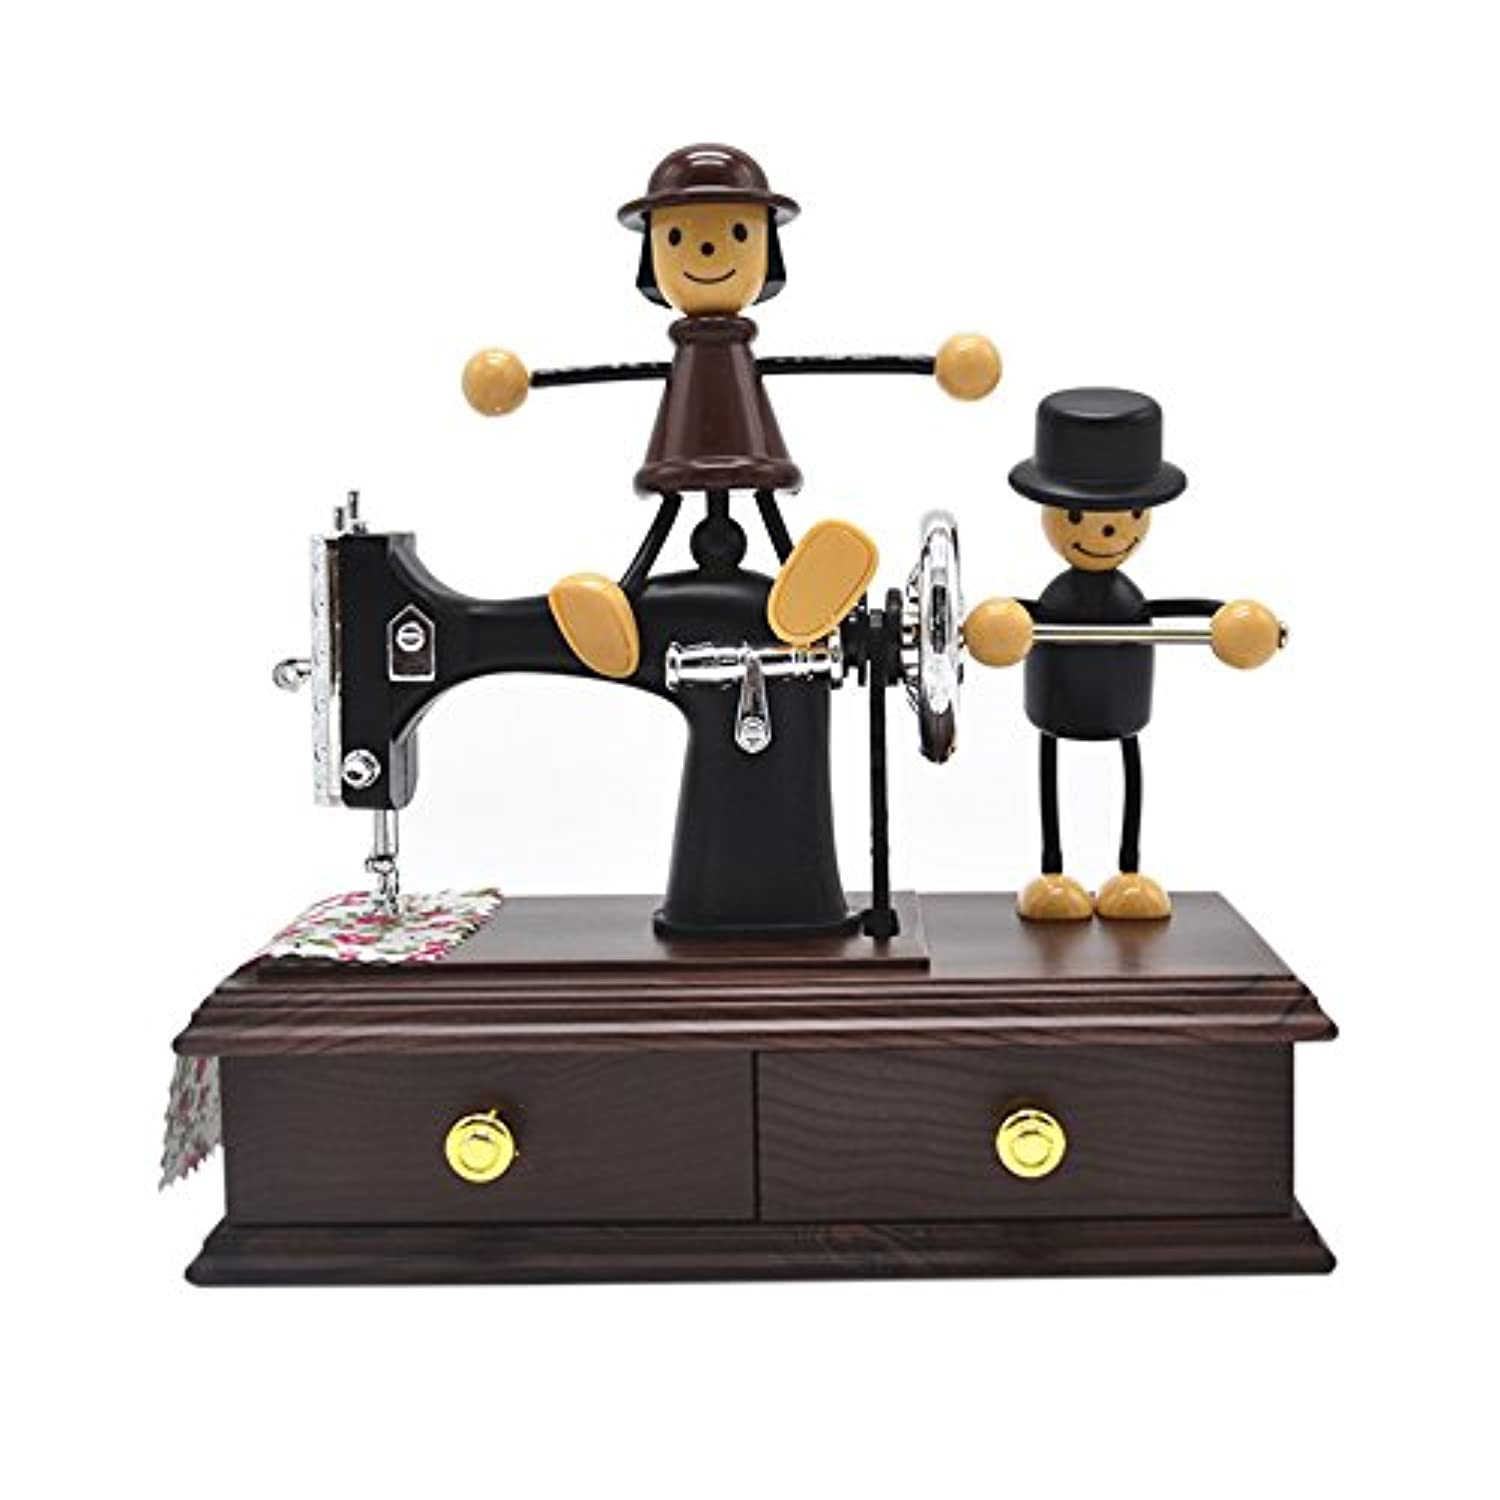 anlydia Cute Lovers Sewing MachineデザインTrinket音楽ボックスギフトforクリスマス